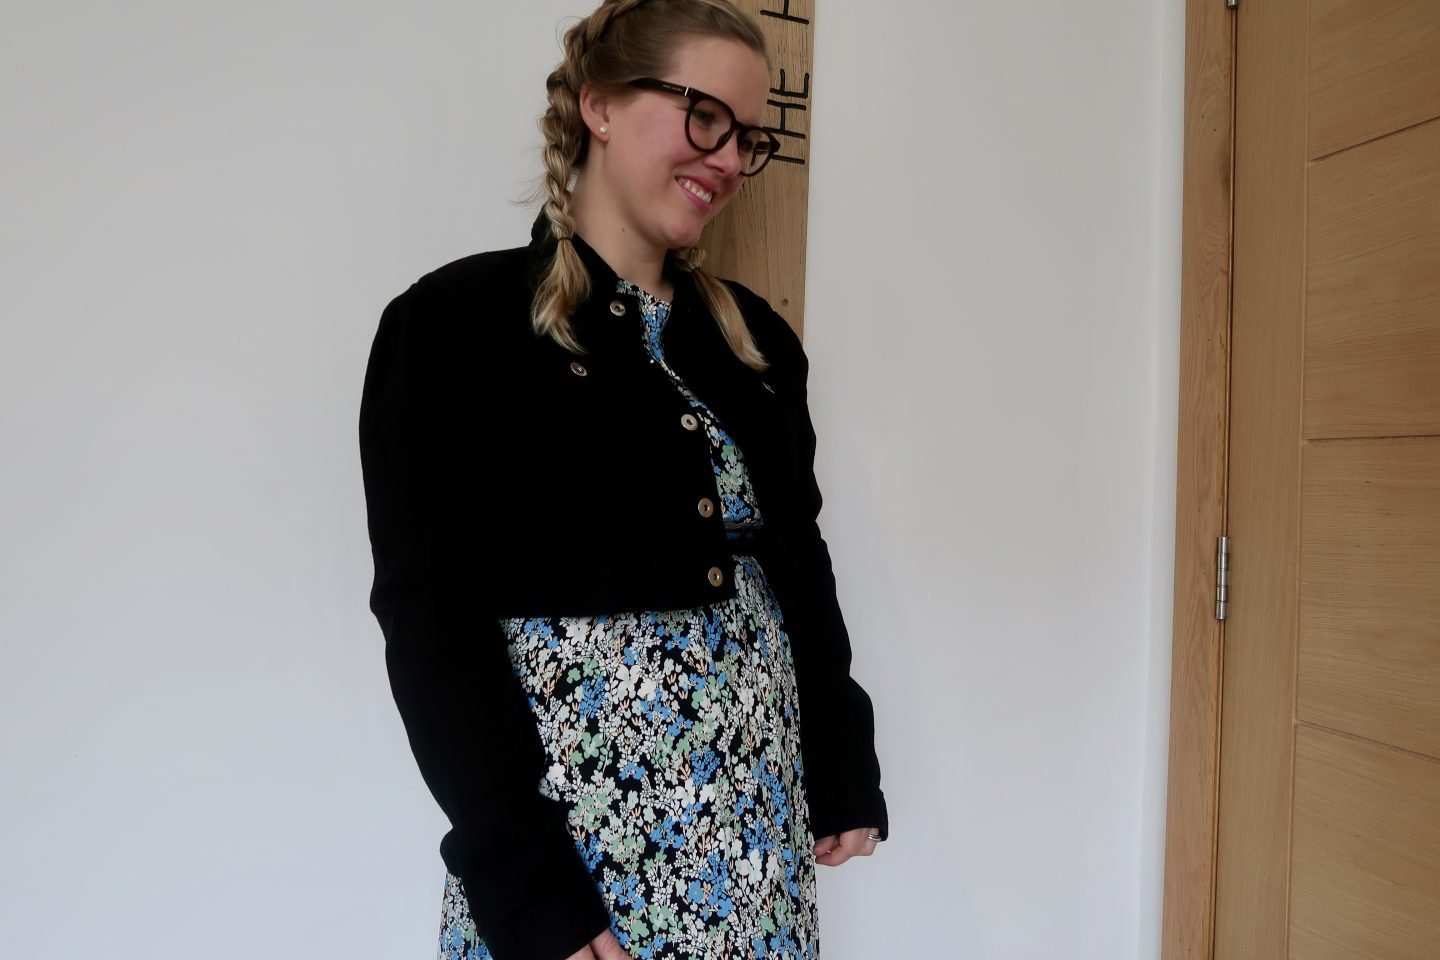 A woman wearing a floral print dress and a cropped black denim jacket